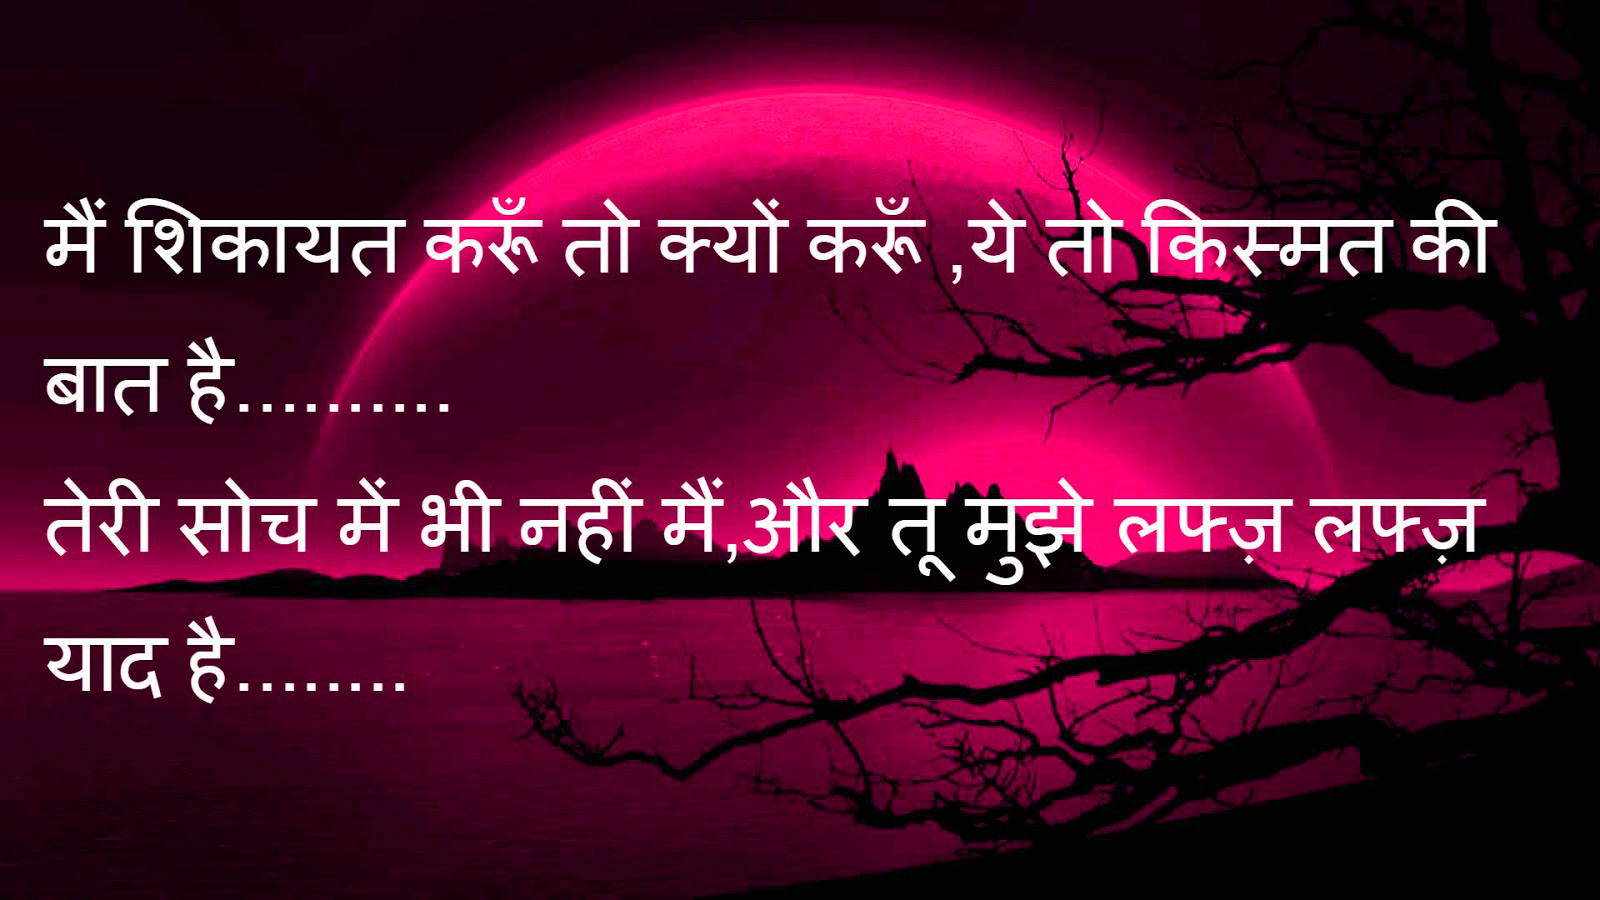 Hindi Sad Love Romantic Shayari Photo Wallpaper Pictures Free HD Download